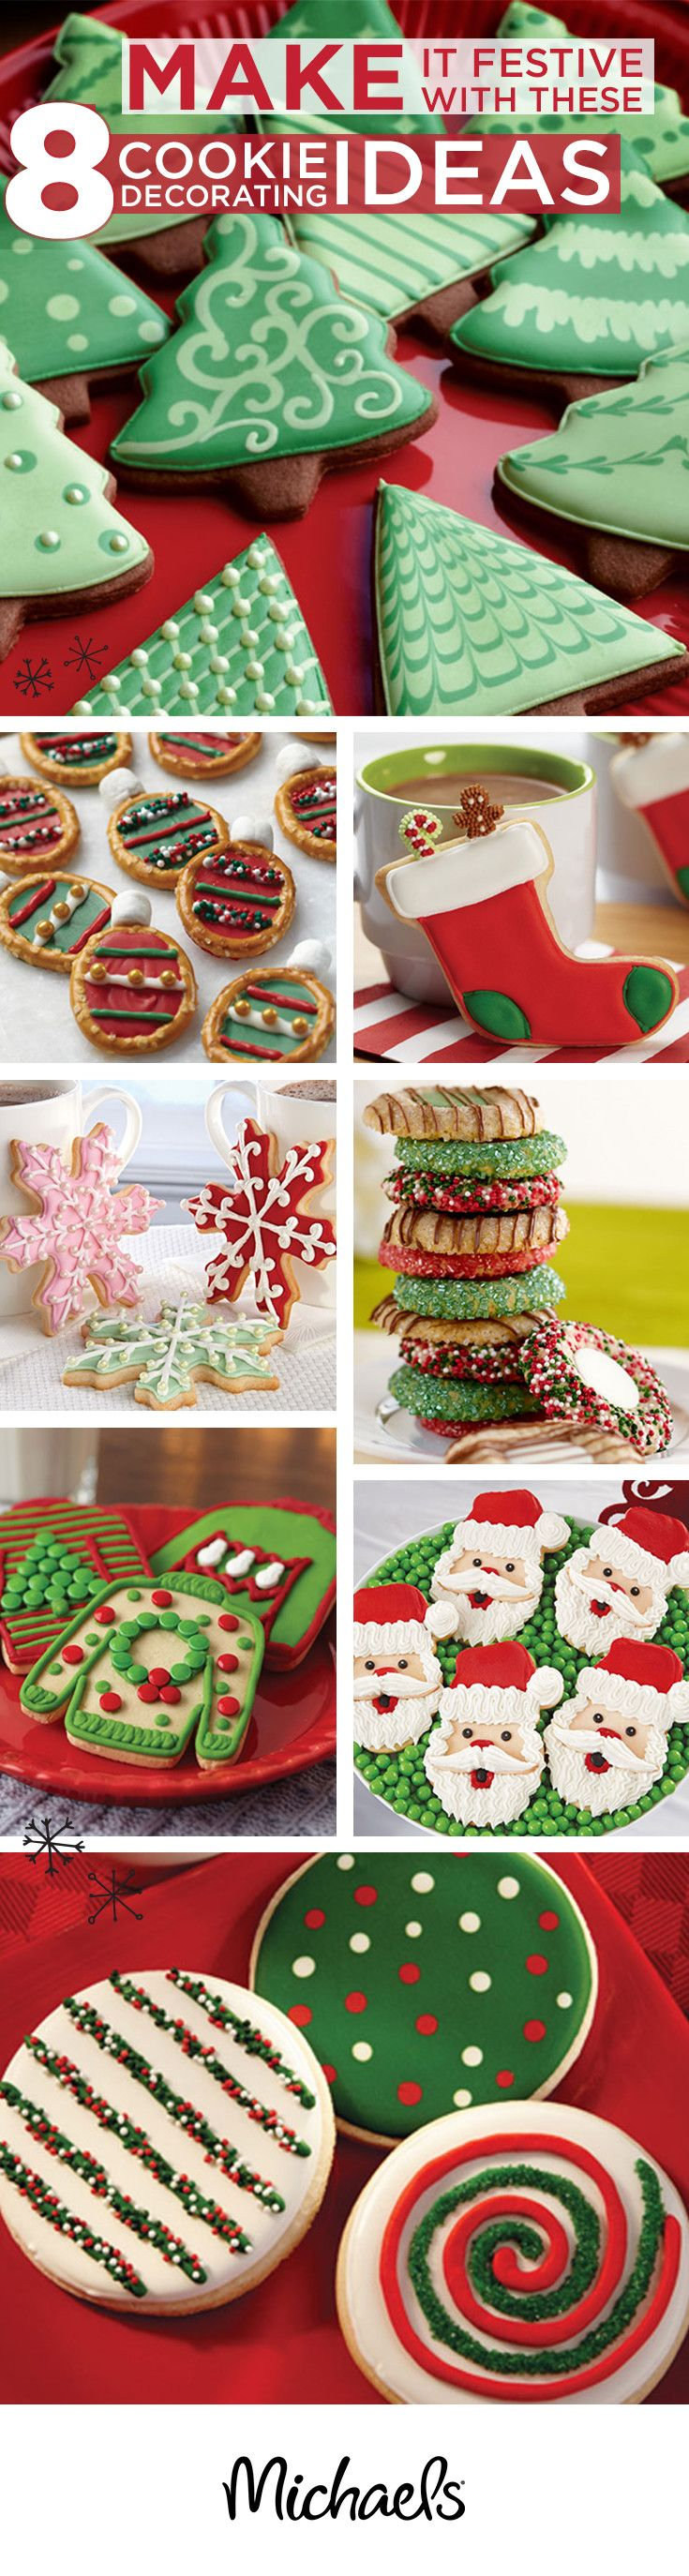 Planning on baking lots of cookies this holiday season? Check out these simple tips and tricks to make professionally decorated cookies in a snap! From icing consistency to cookie cutter tricks, we've got you covered. For more inspiration and ideas, visit Michaels.com